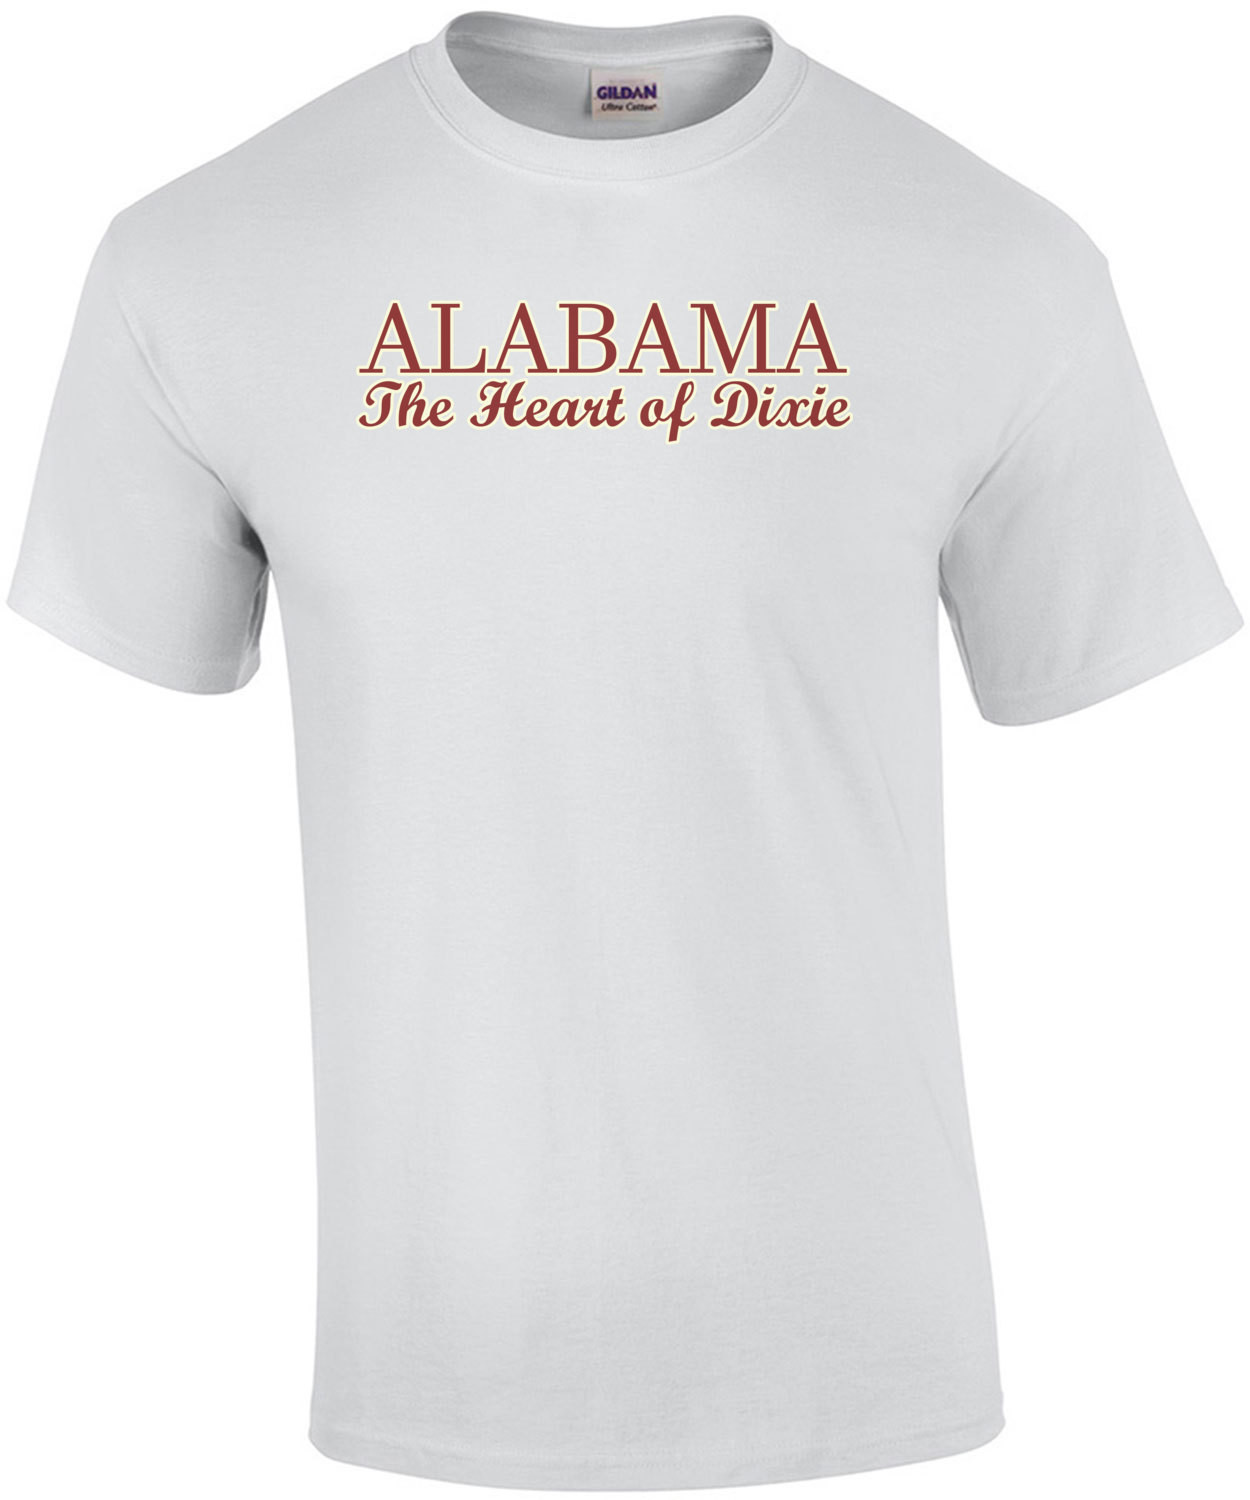 Alabama - the heart of dixie - alabama T-shirt